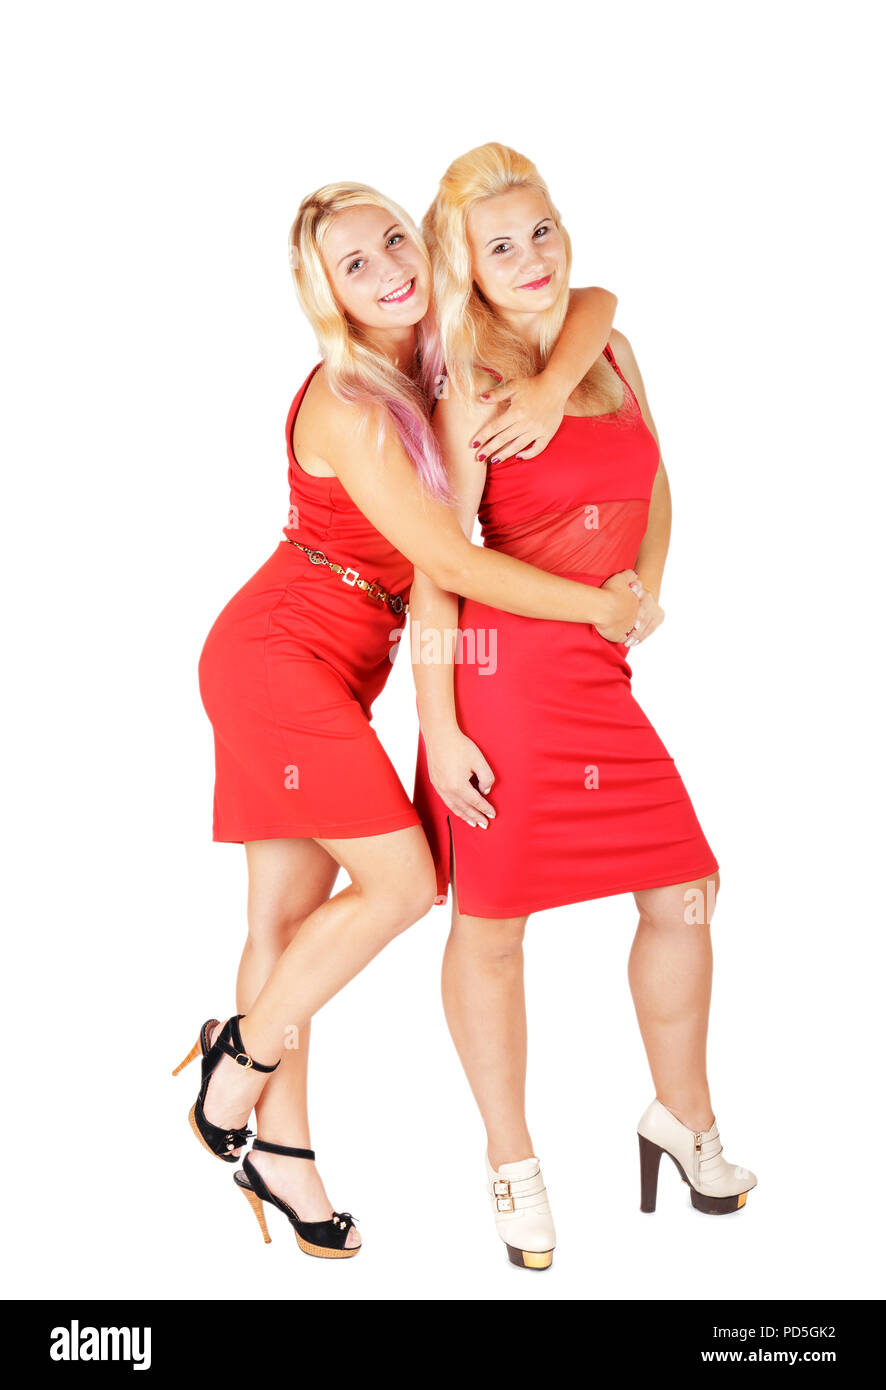 Couple smiling blonde girls in red dresses on high heels isolated on white background.  Lovely sisters - Stock Image